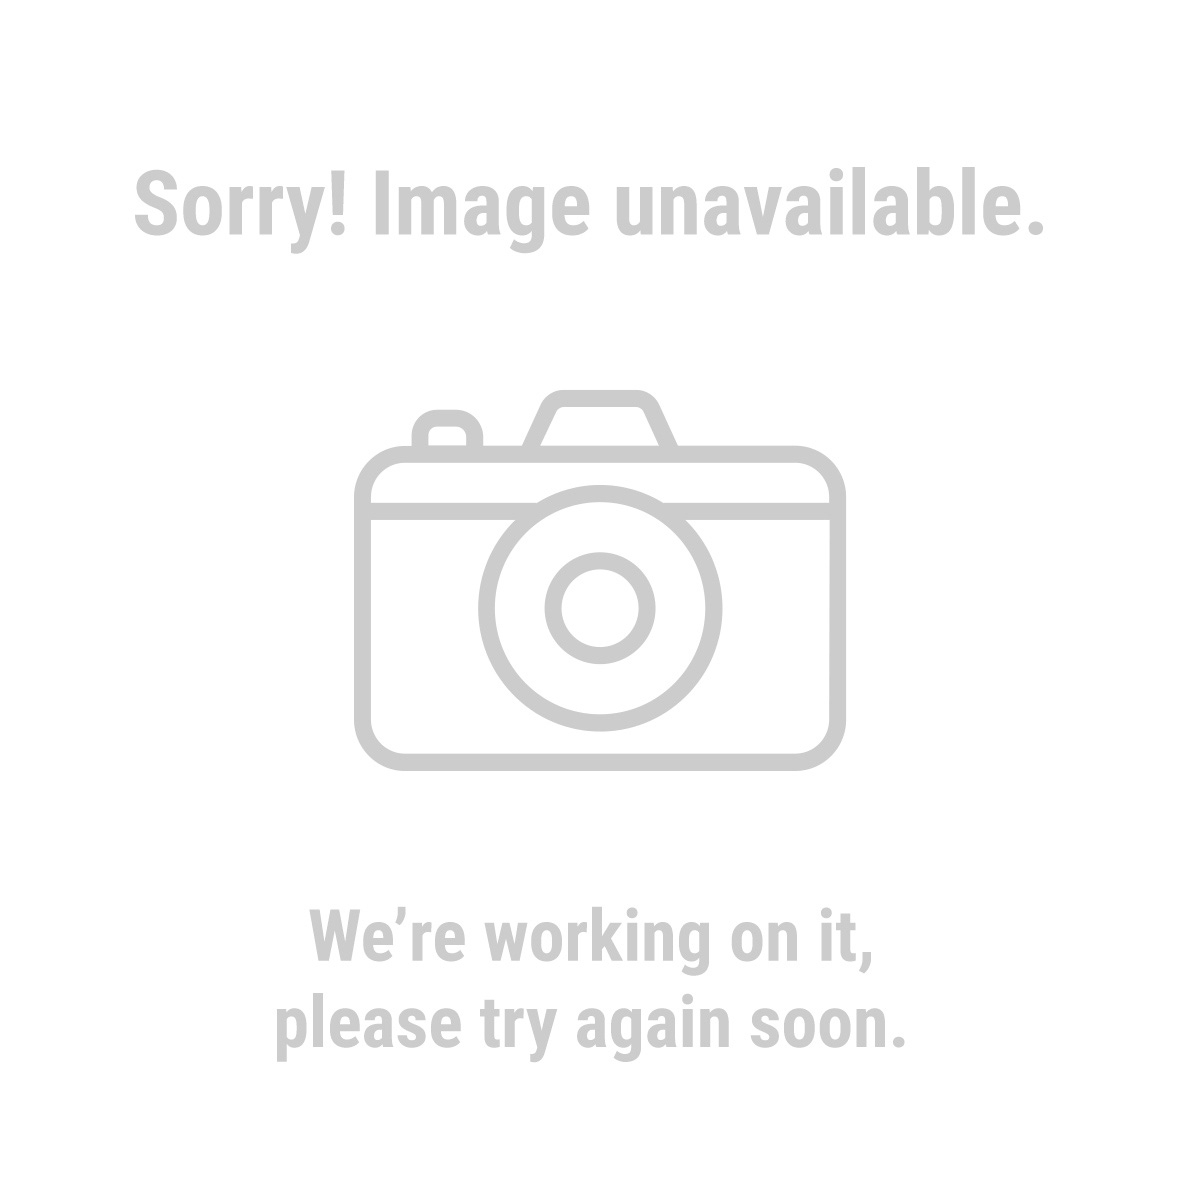 Predator® 63406 3 in. Intake/Discharge 212cc Gasoline Engine Water Pump - 290 GPM